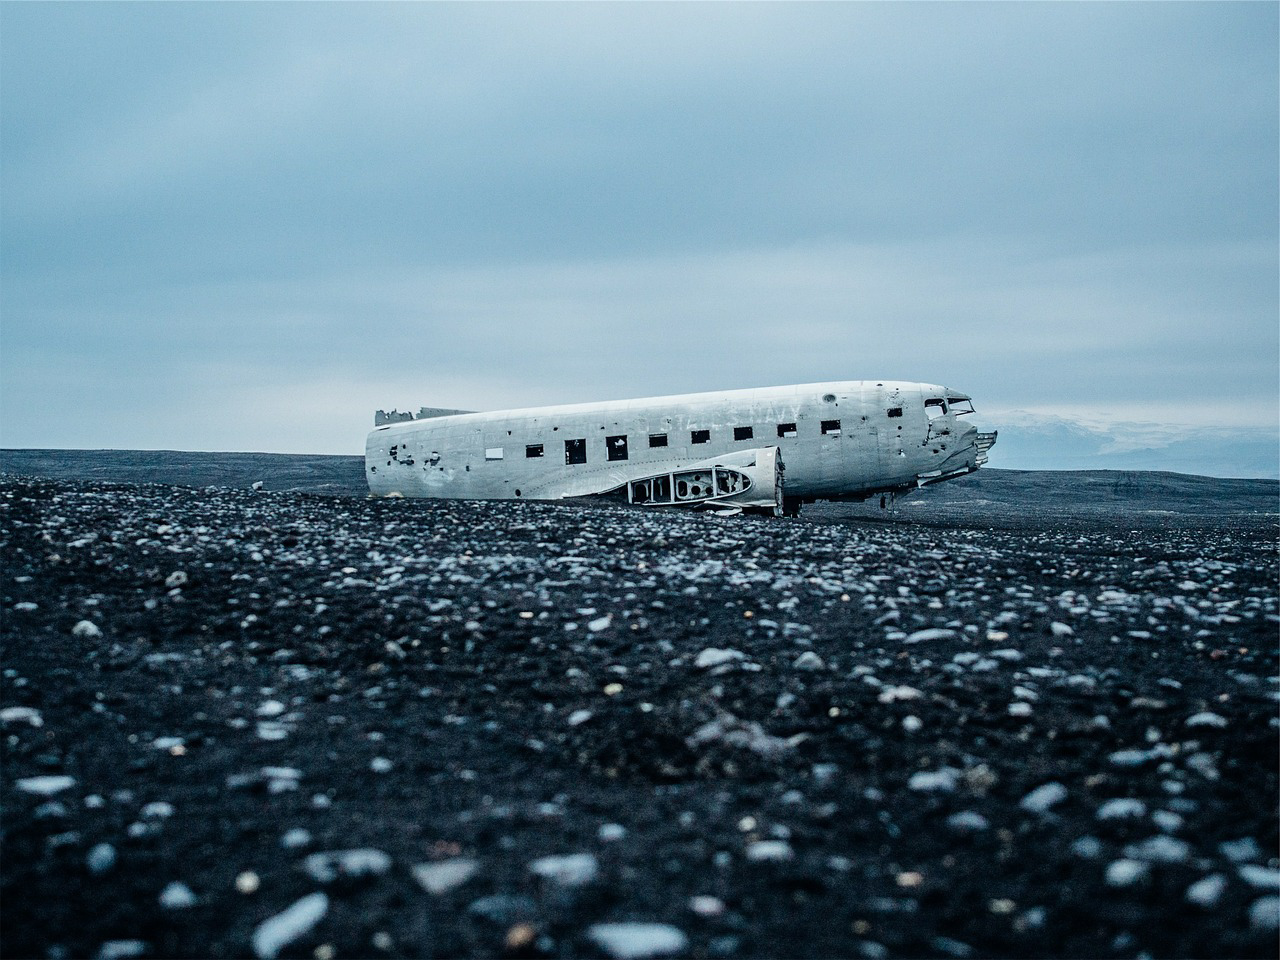 Plane wreck Iceland on black sand beach